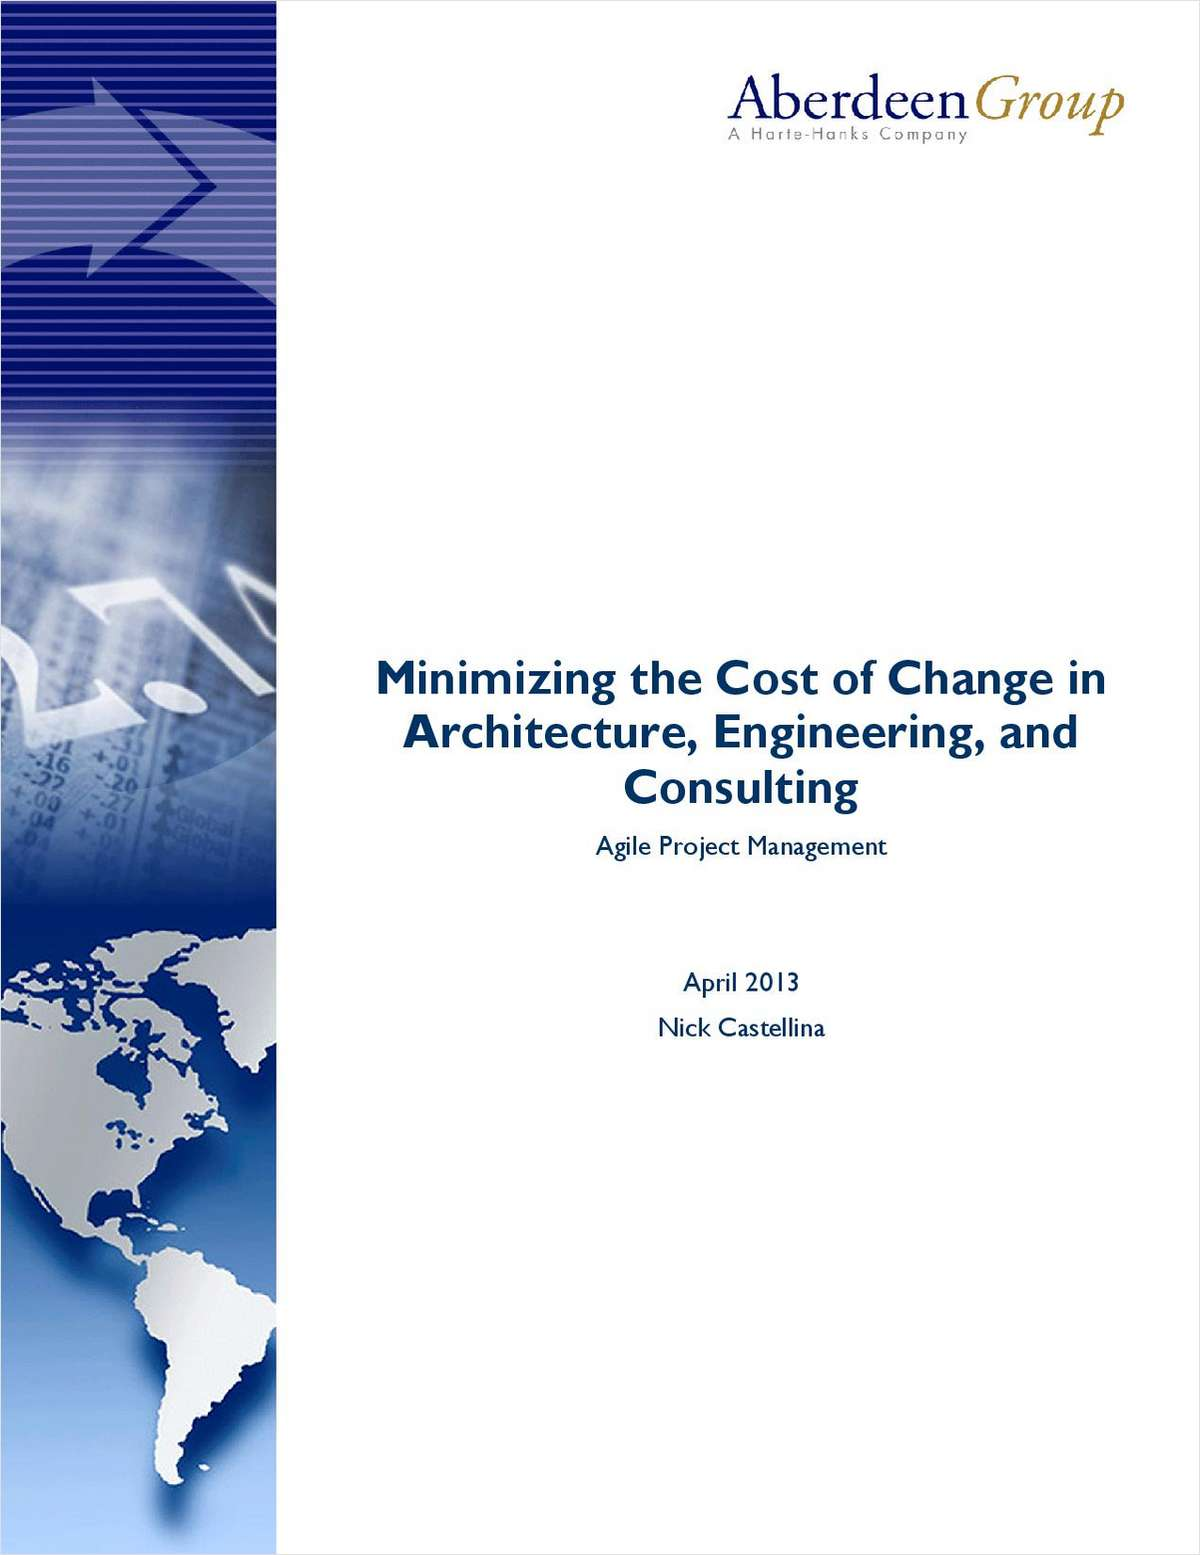 Minimizing the Cost of Change in Architecture, Engineering, and Consulting: Agile Project Management